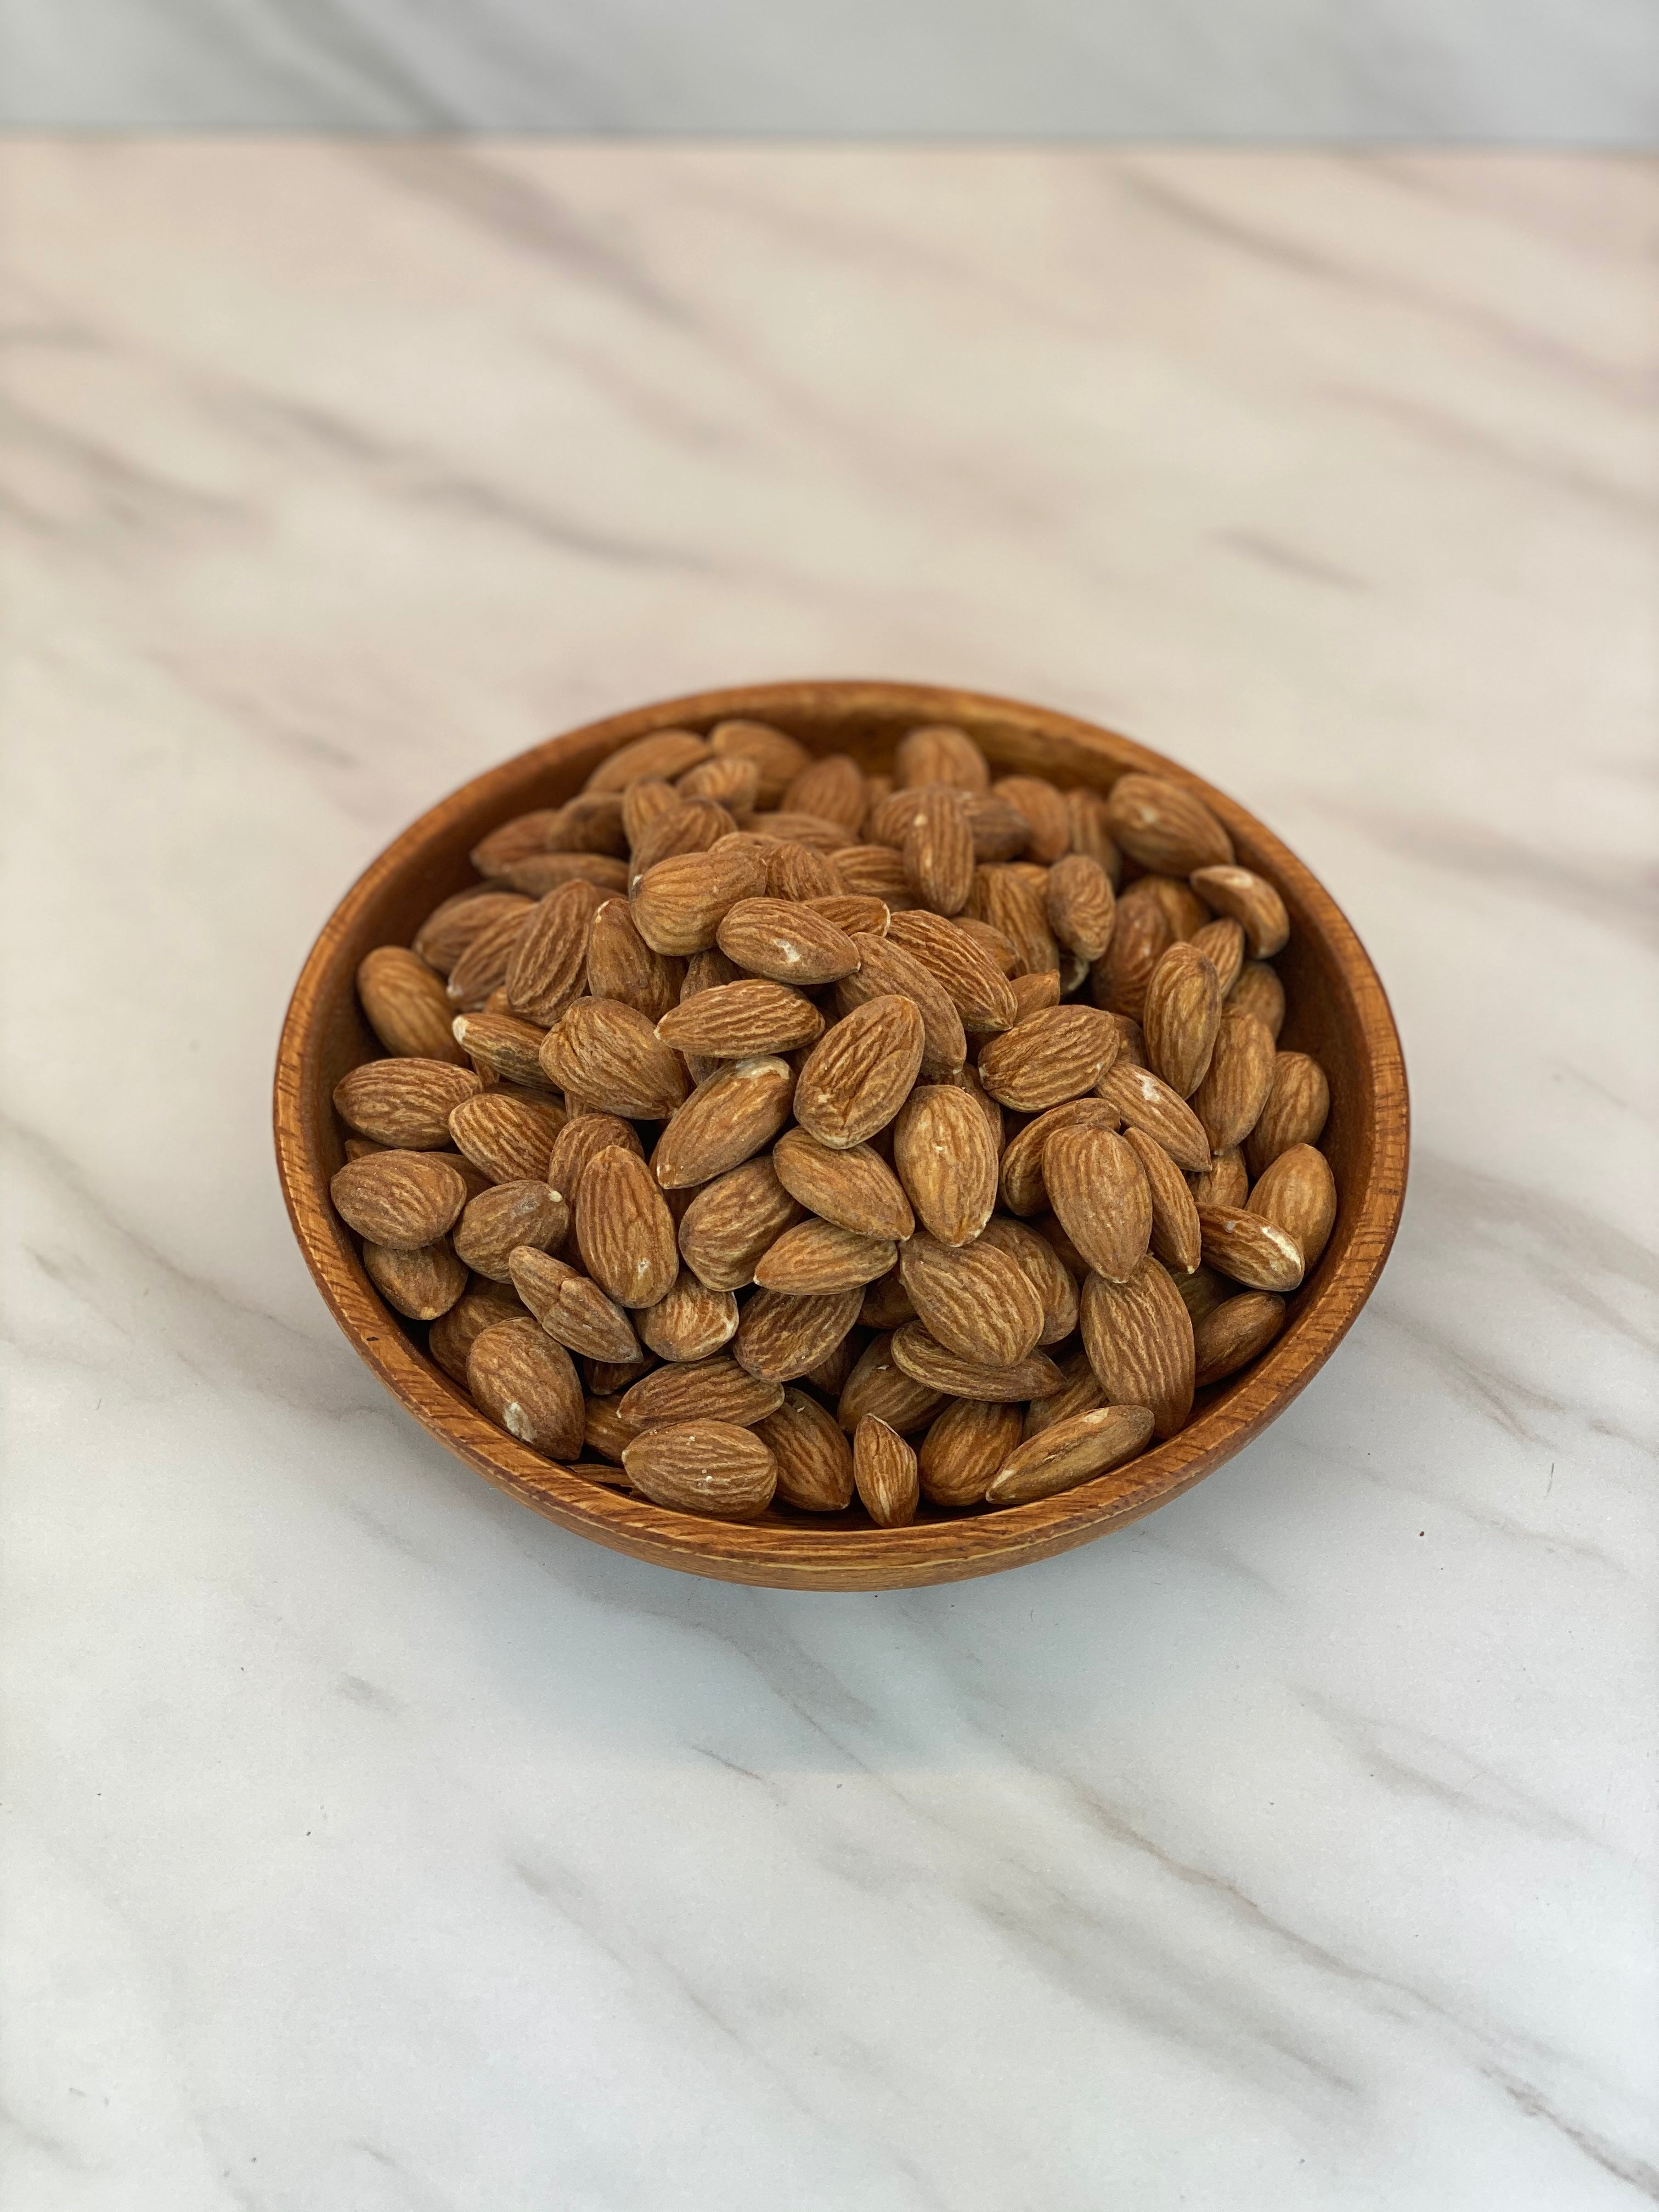 Roasted Almonds (杏仁)